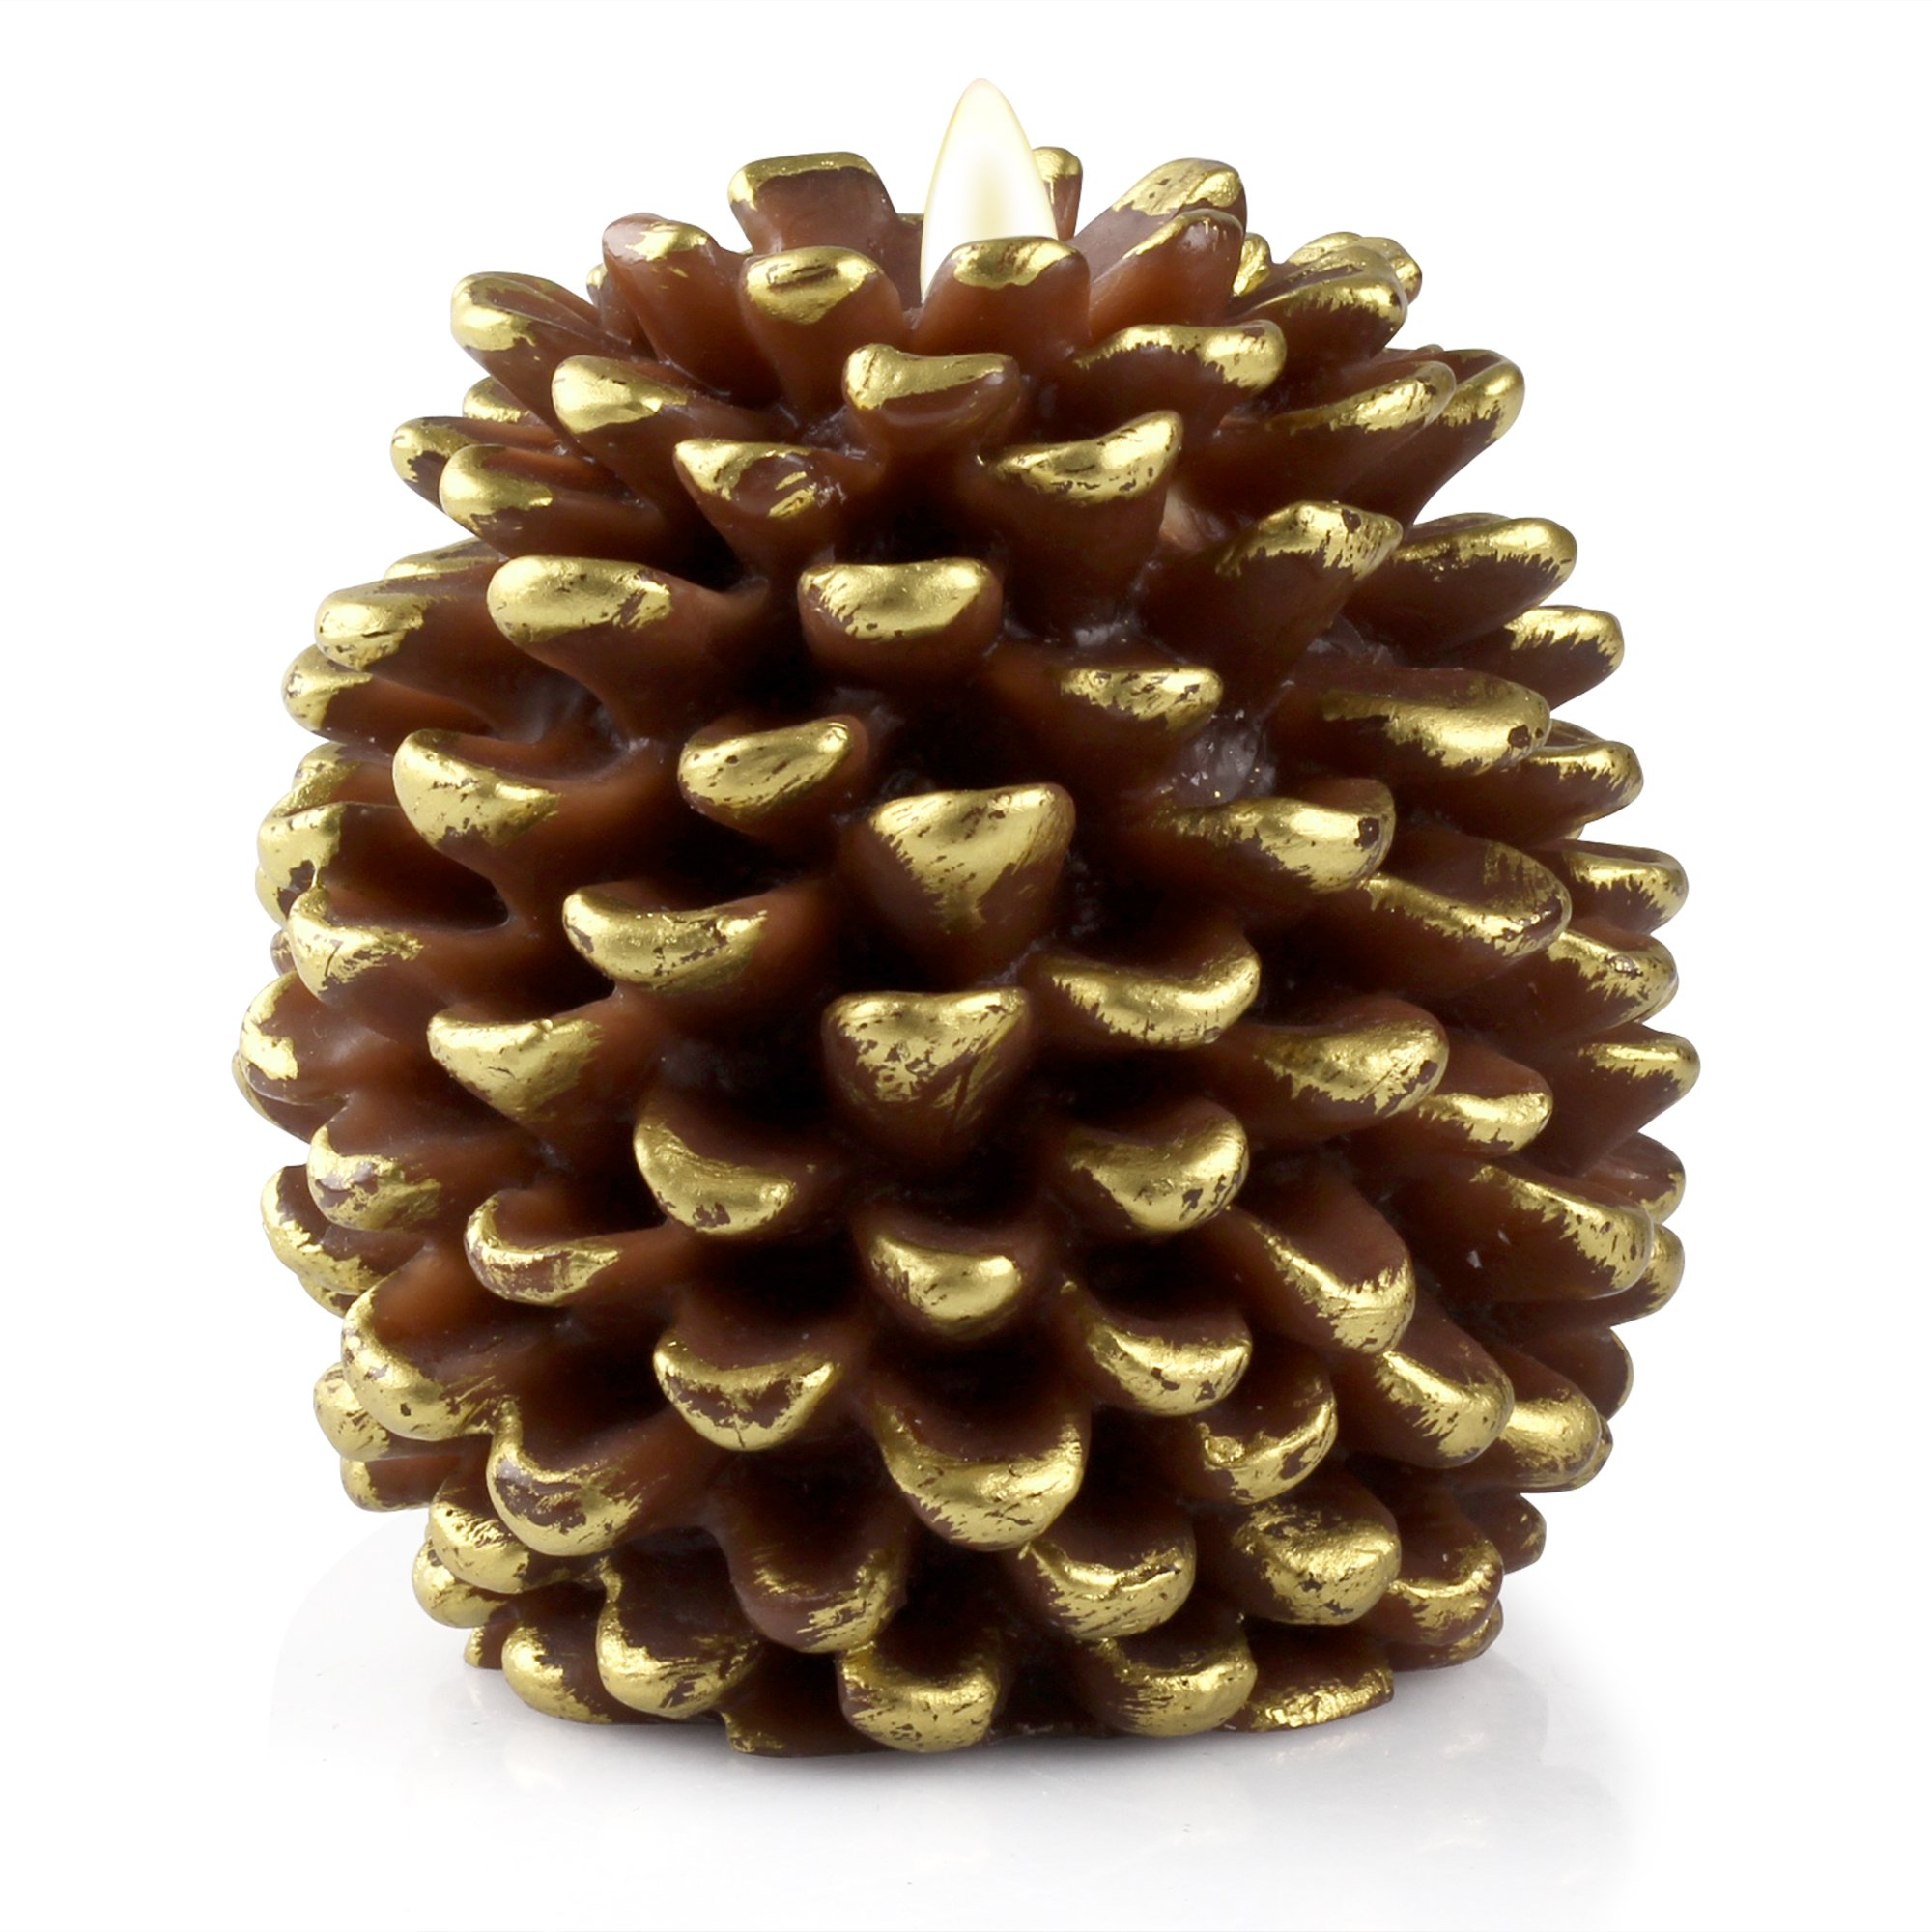 Luminara LED Flameless Candle, Flameless Real Pine Cone LED Candles for Home/Party/Halloween/Christmas/Wedding Decor with Timer Control, Battery Operated 3'' x 4.2''(Brown) by iDOO (Image #1)